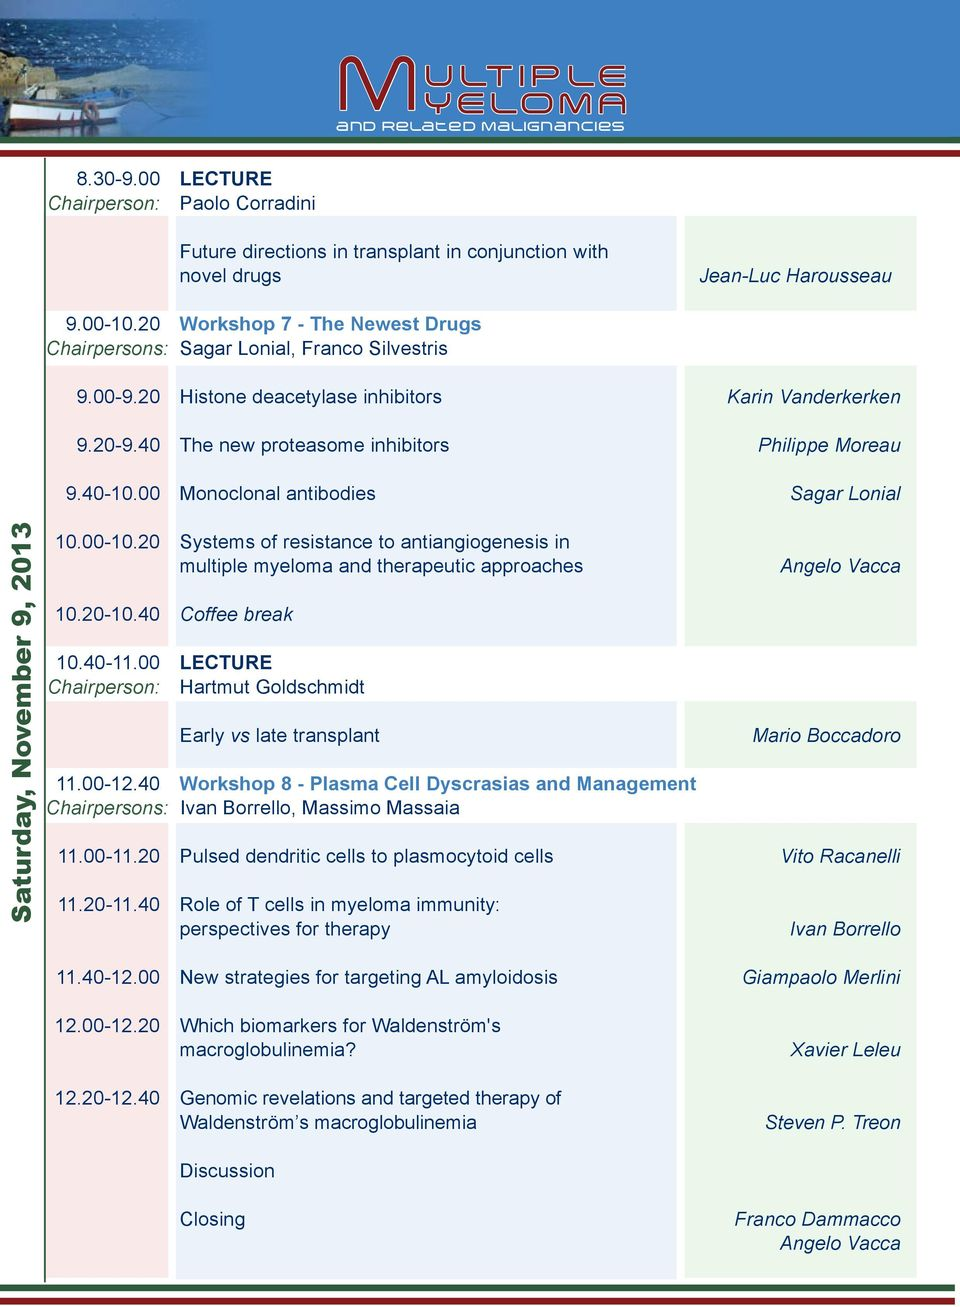 40-10.00 Monoclonal antibodies Sagar Lonial Saturday, November 9, 2013 10.00-10.20 Systems of resistance to antiangiogenesis in multiple myeloma and therapeutic approaches 10.20-10.40 Coffee break 10.